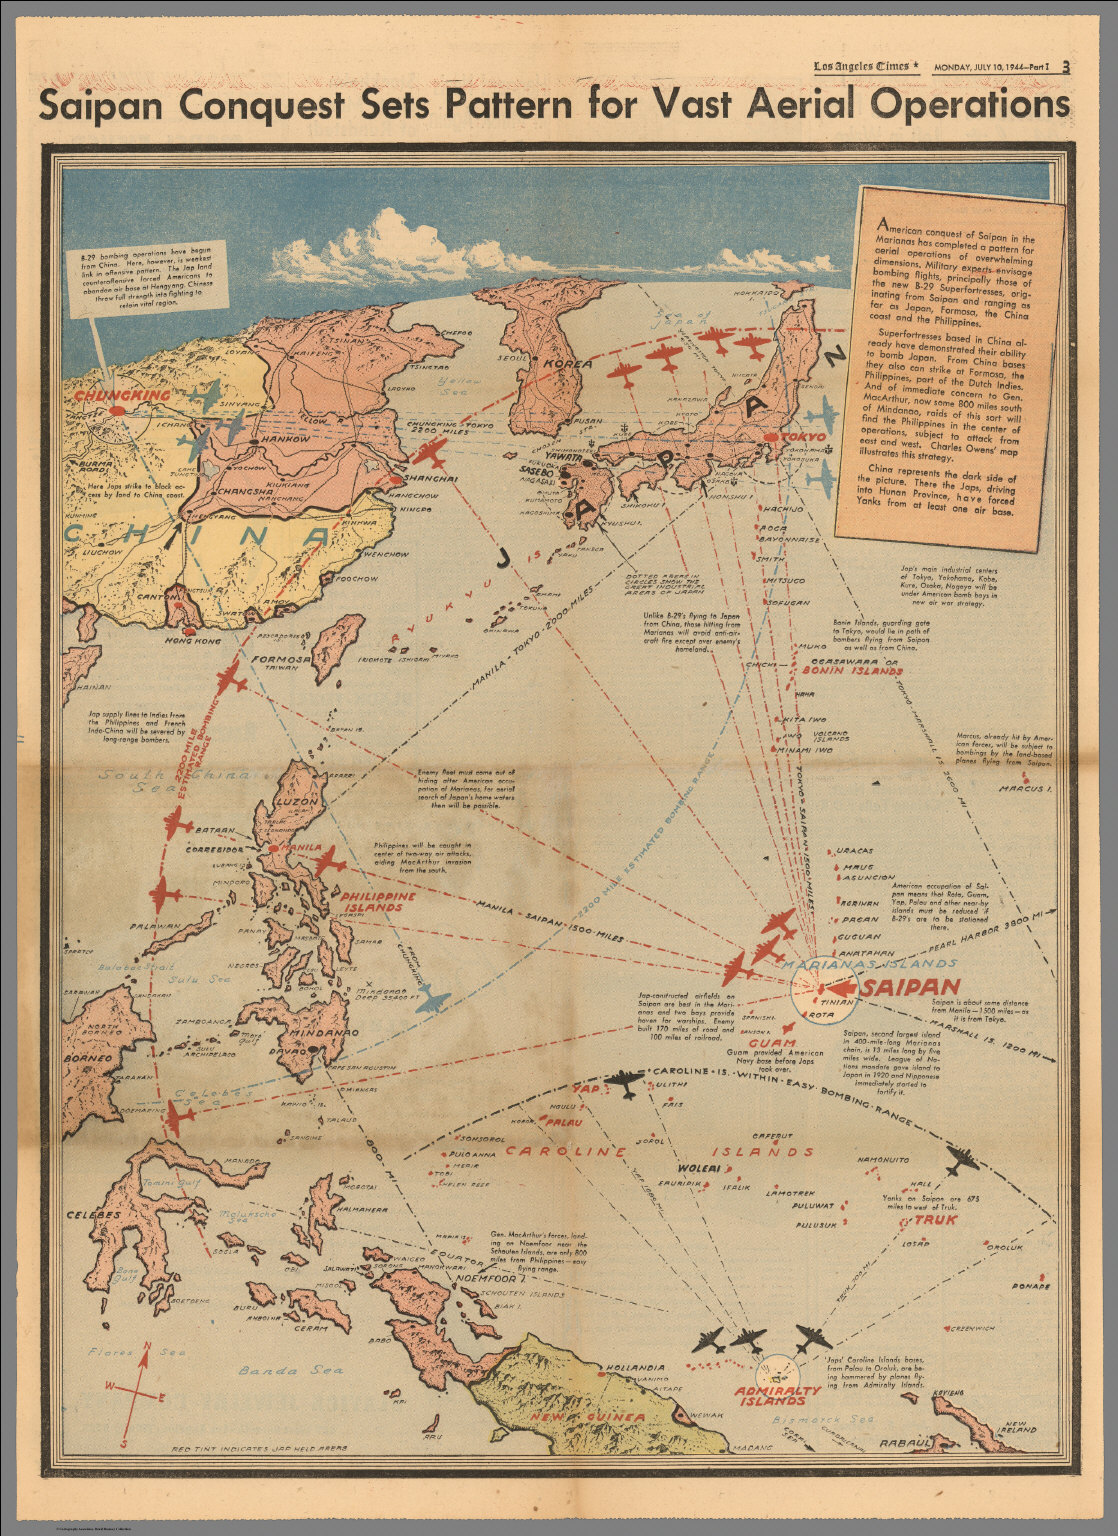 Saipan conquest sets pattern for vast aerial operations